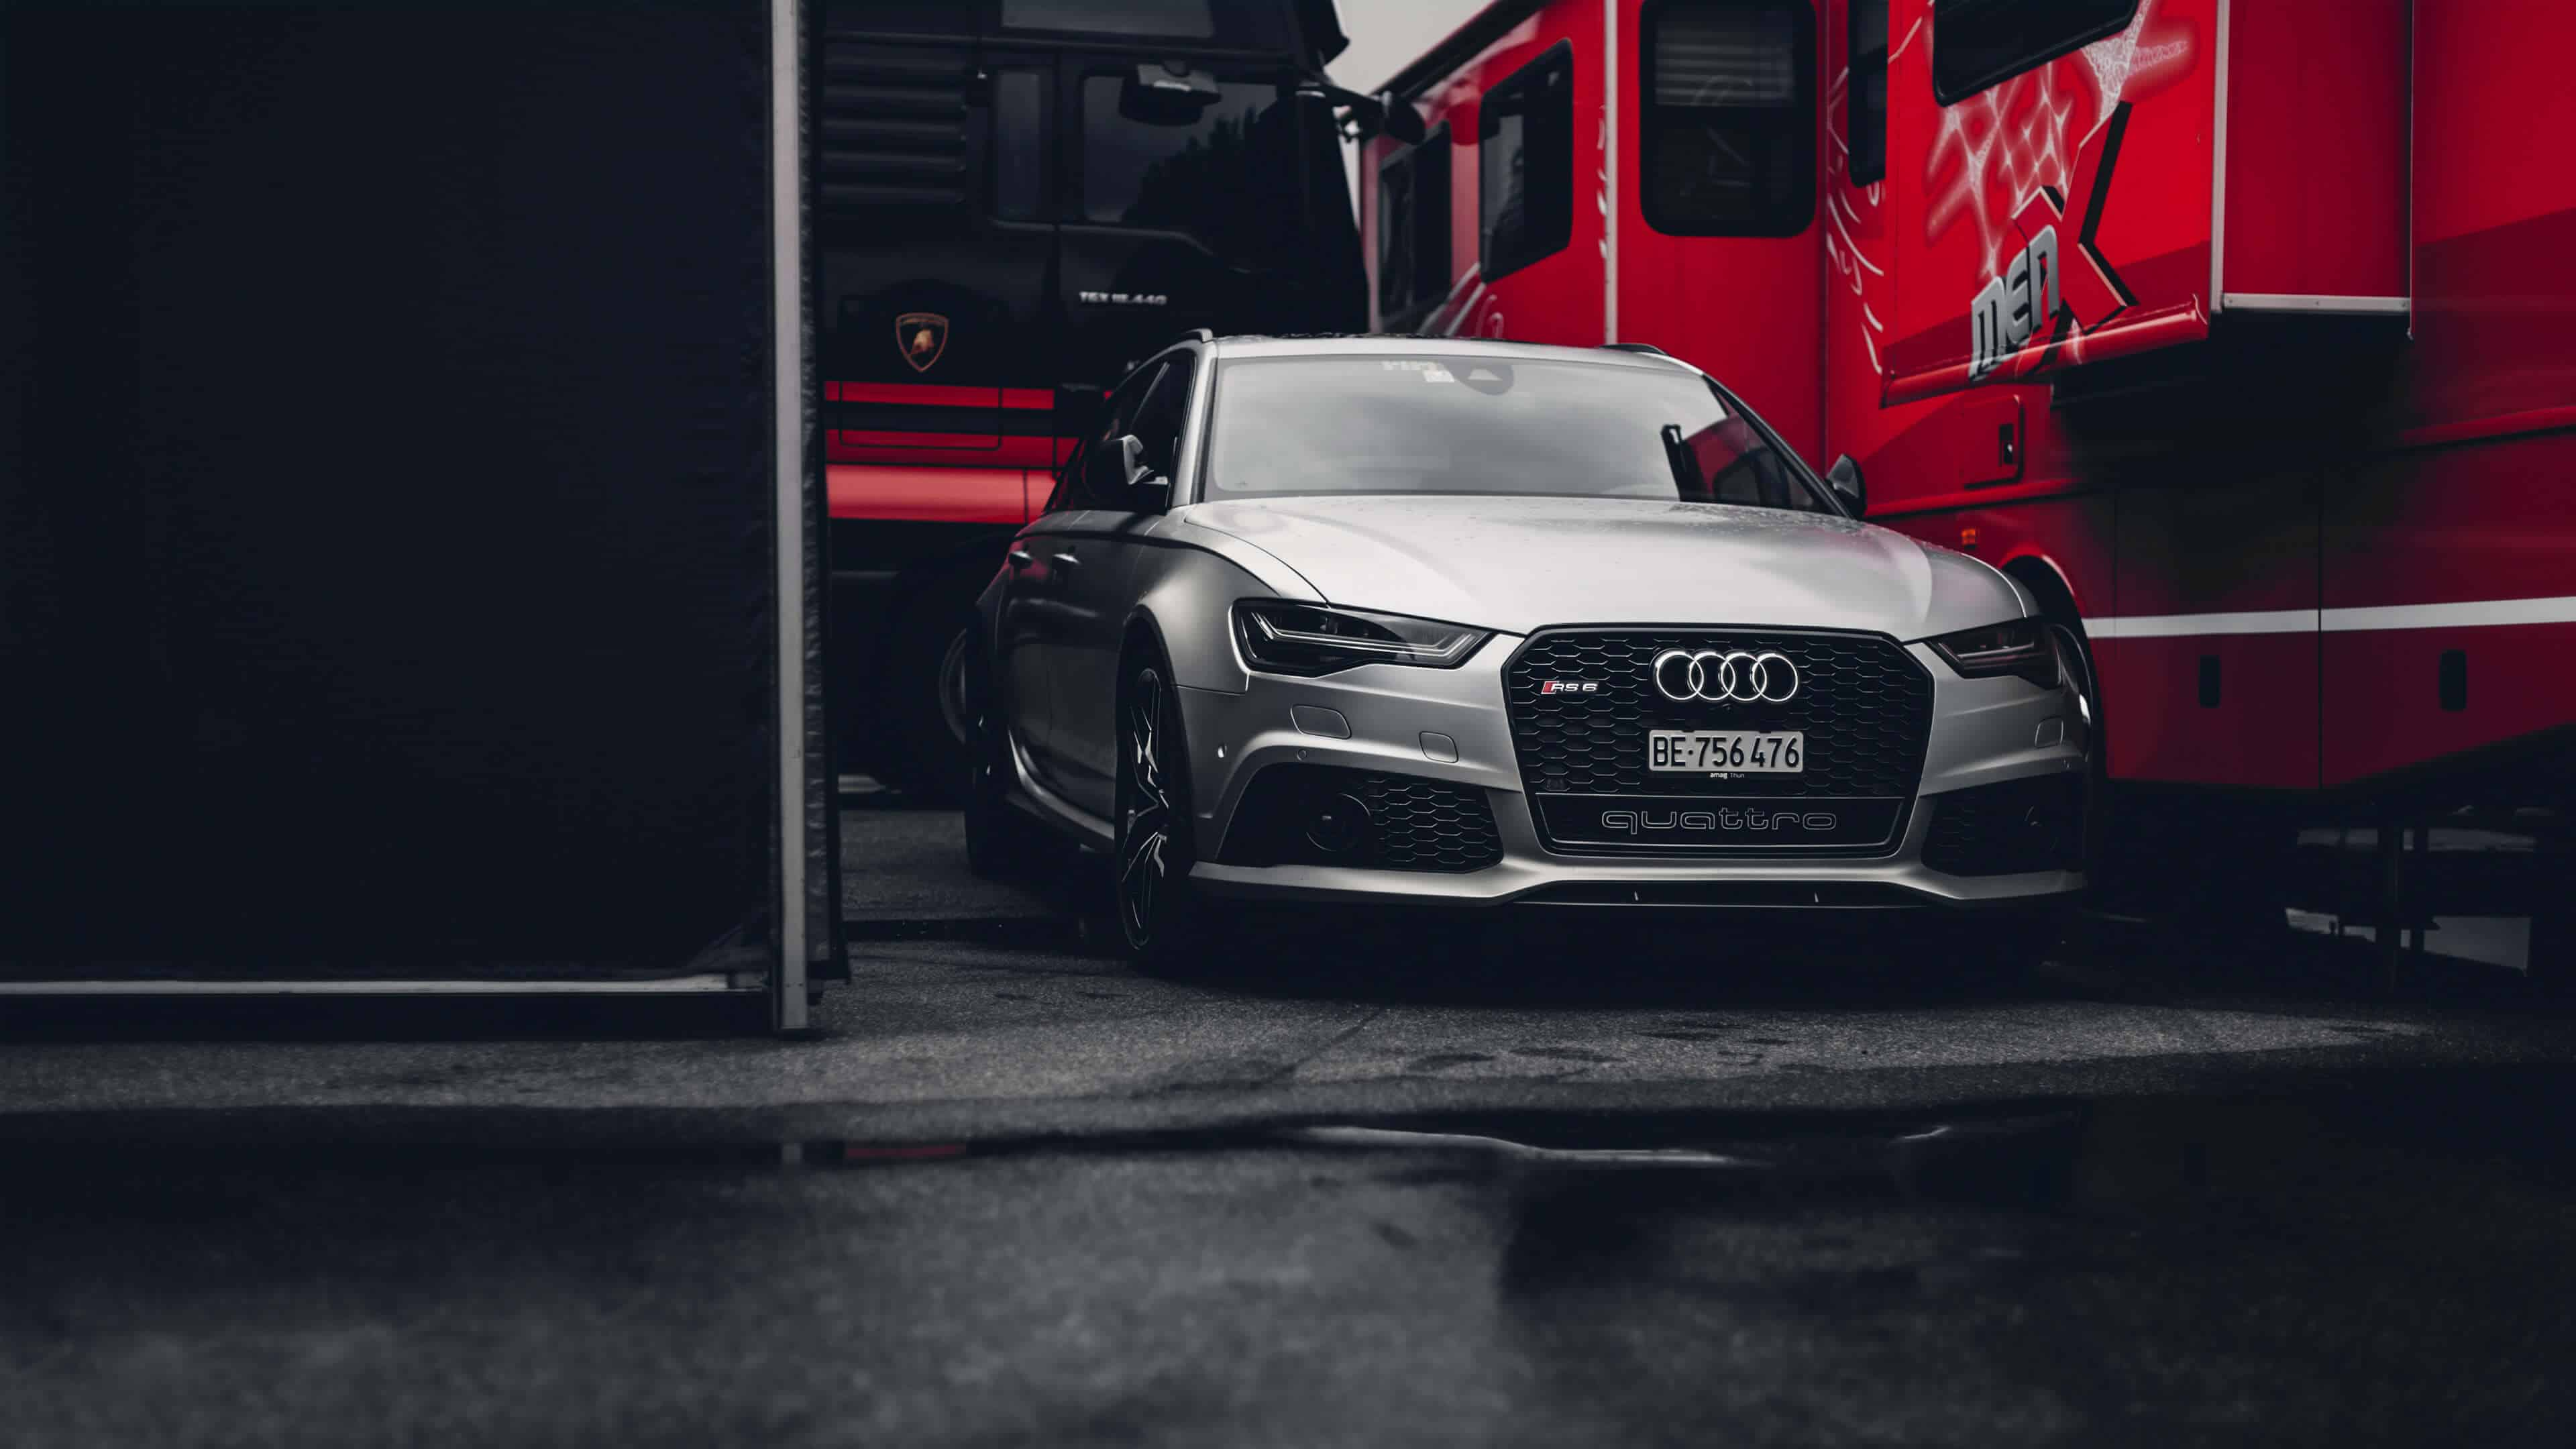 Audi RS6 Quattro UHD 4K Wallpapers